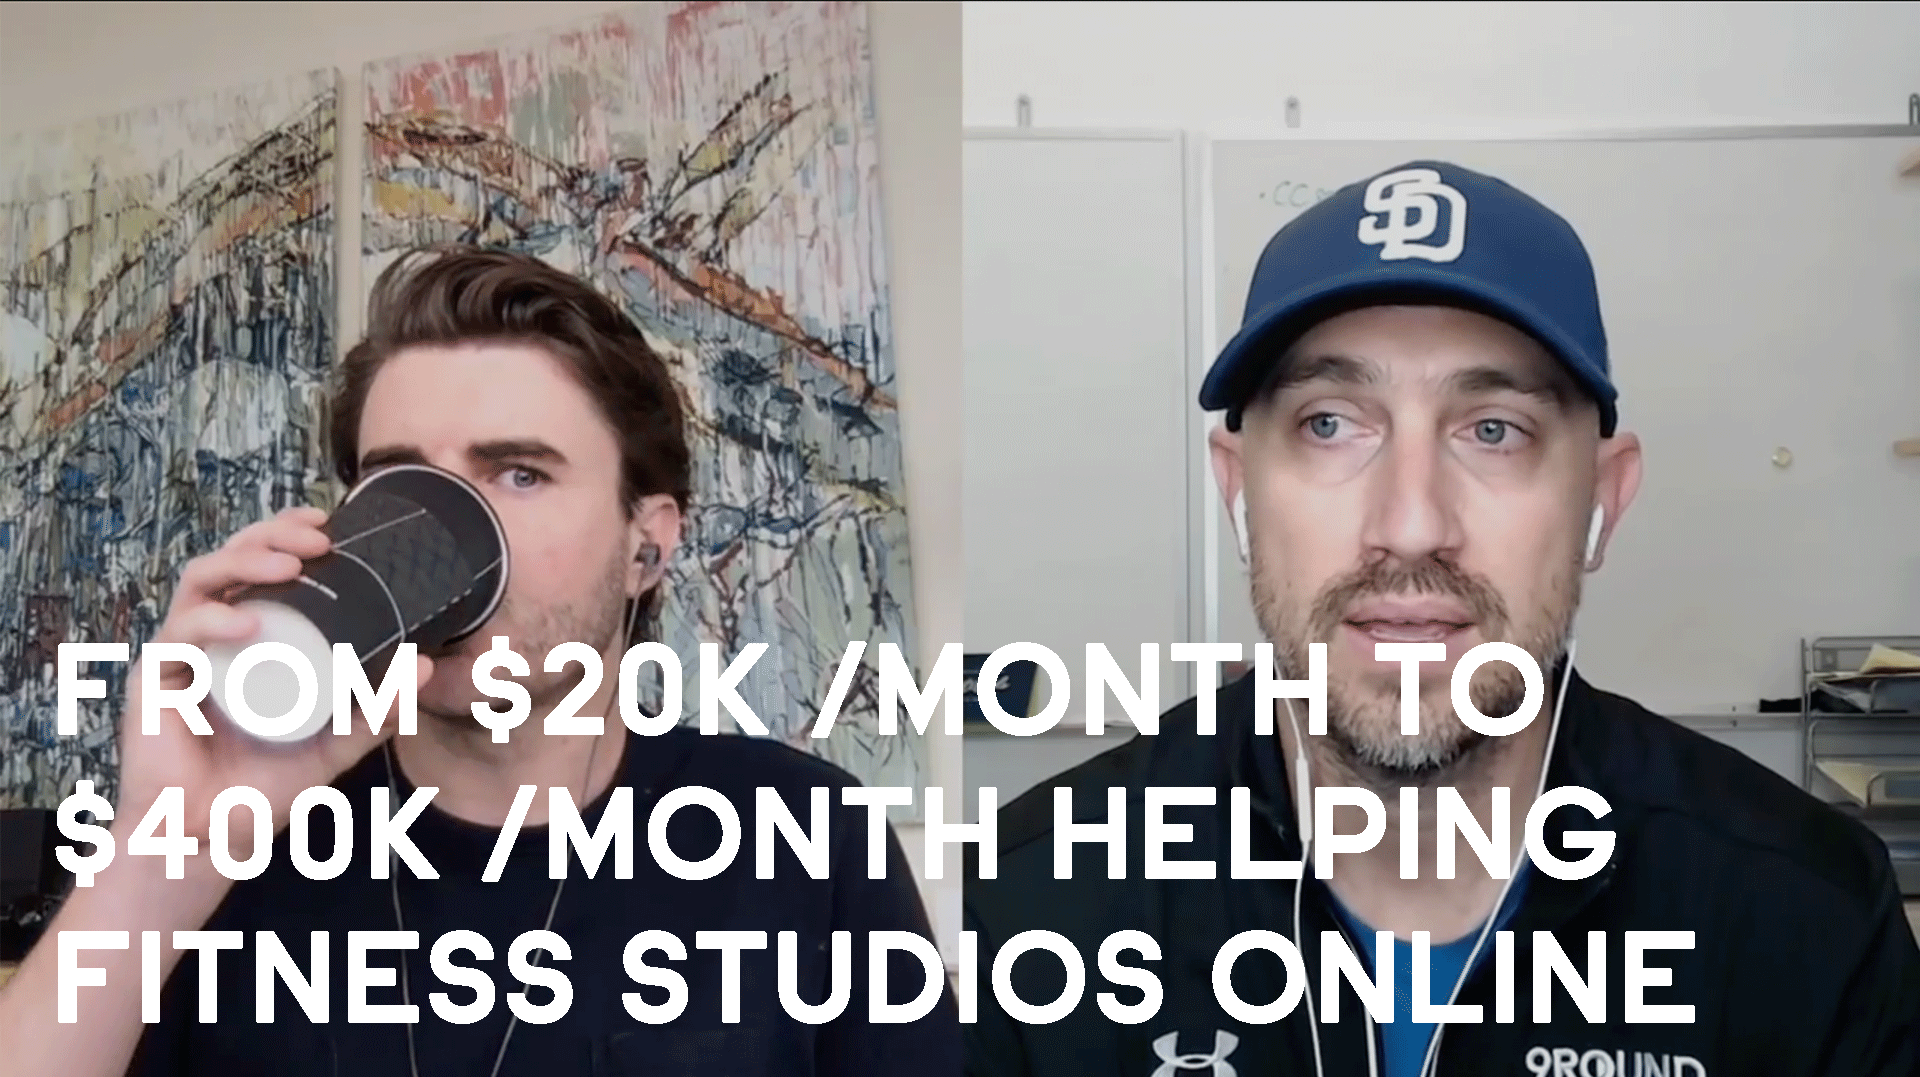 How Robb Bailey Went From $20k /month To $400k /month Helping Fitness Studios